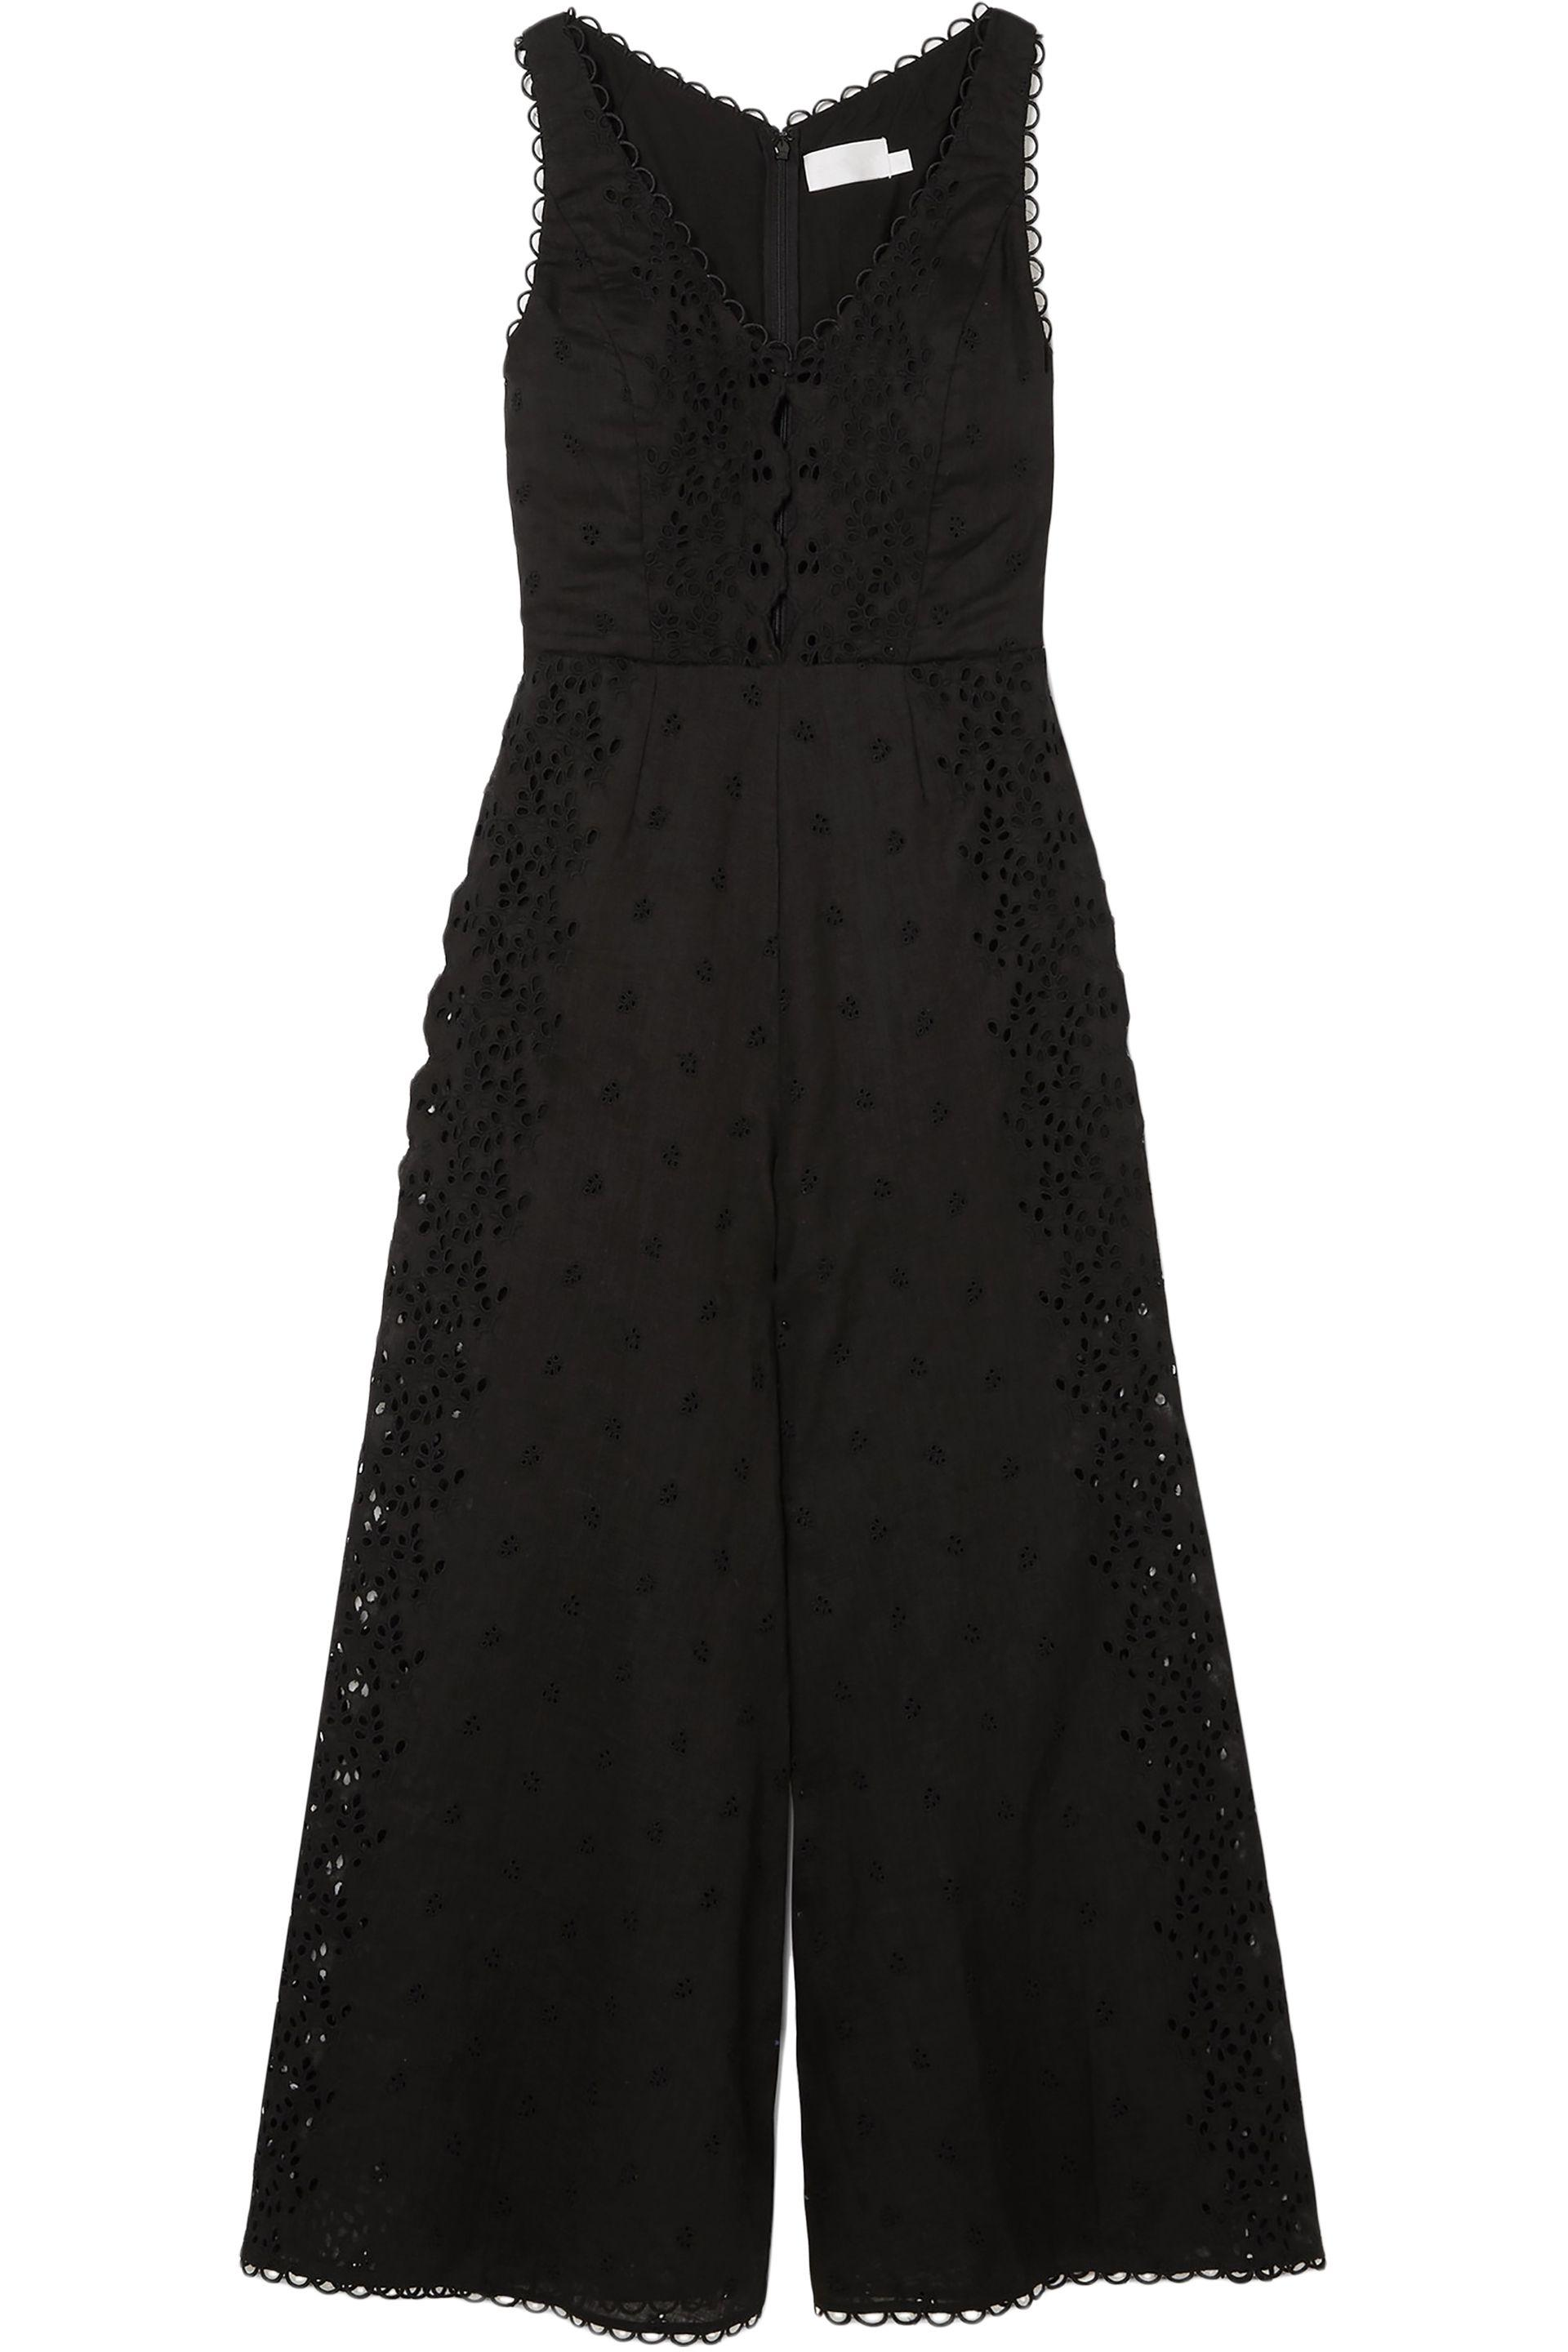 fa95b5f75799 Zimmermann - Woman Broderie Anglaise Cotton-trimmed Linen Jumpsuit Black -  Lyst. View fullscreen